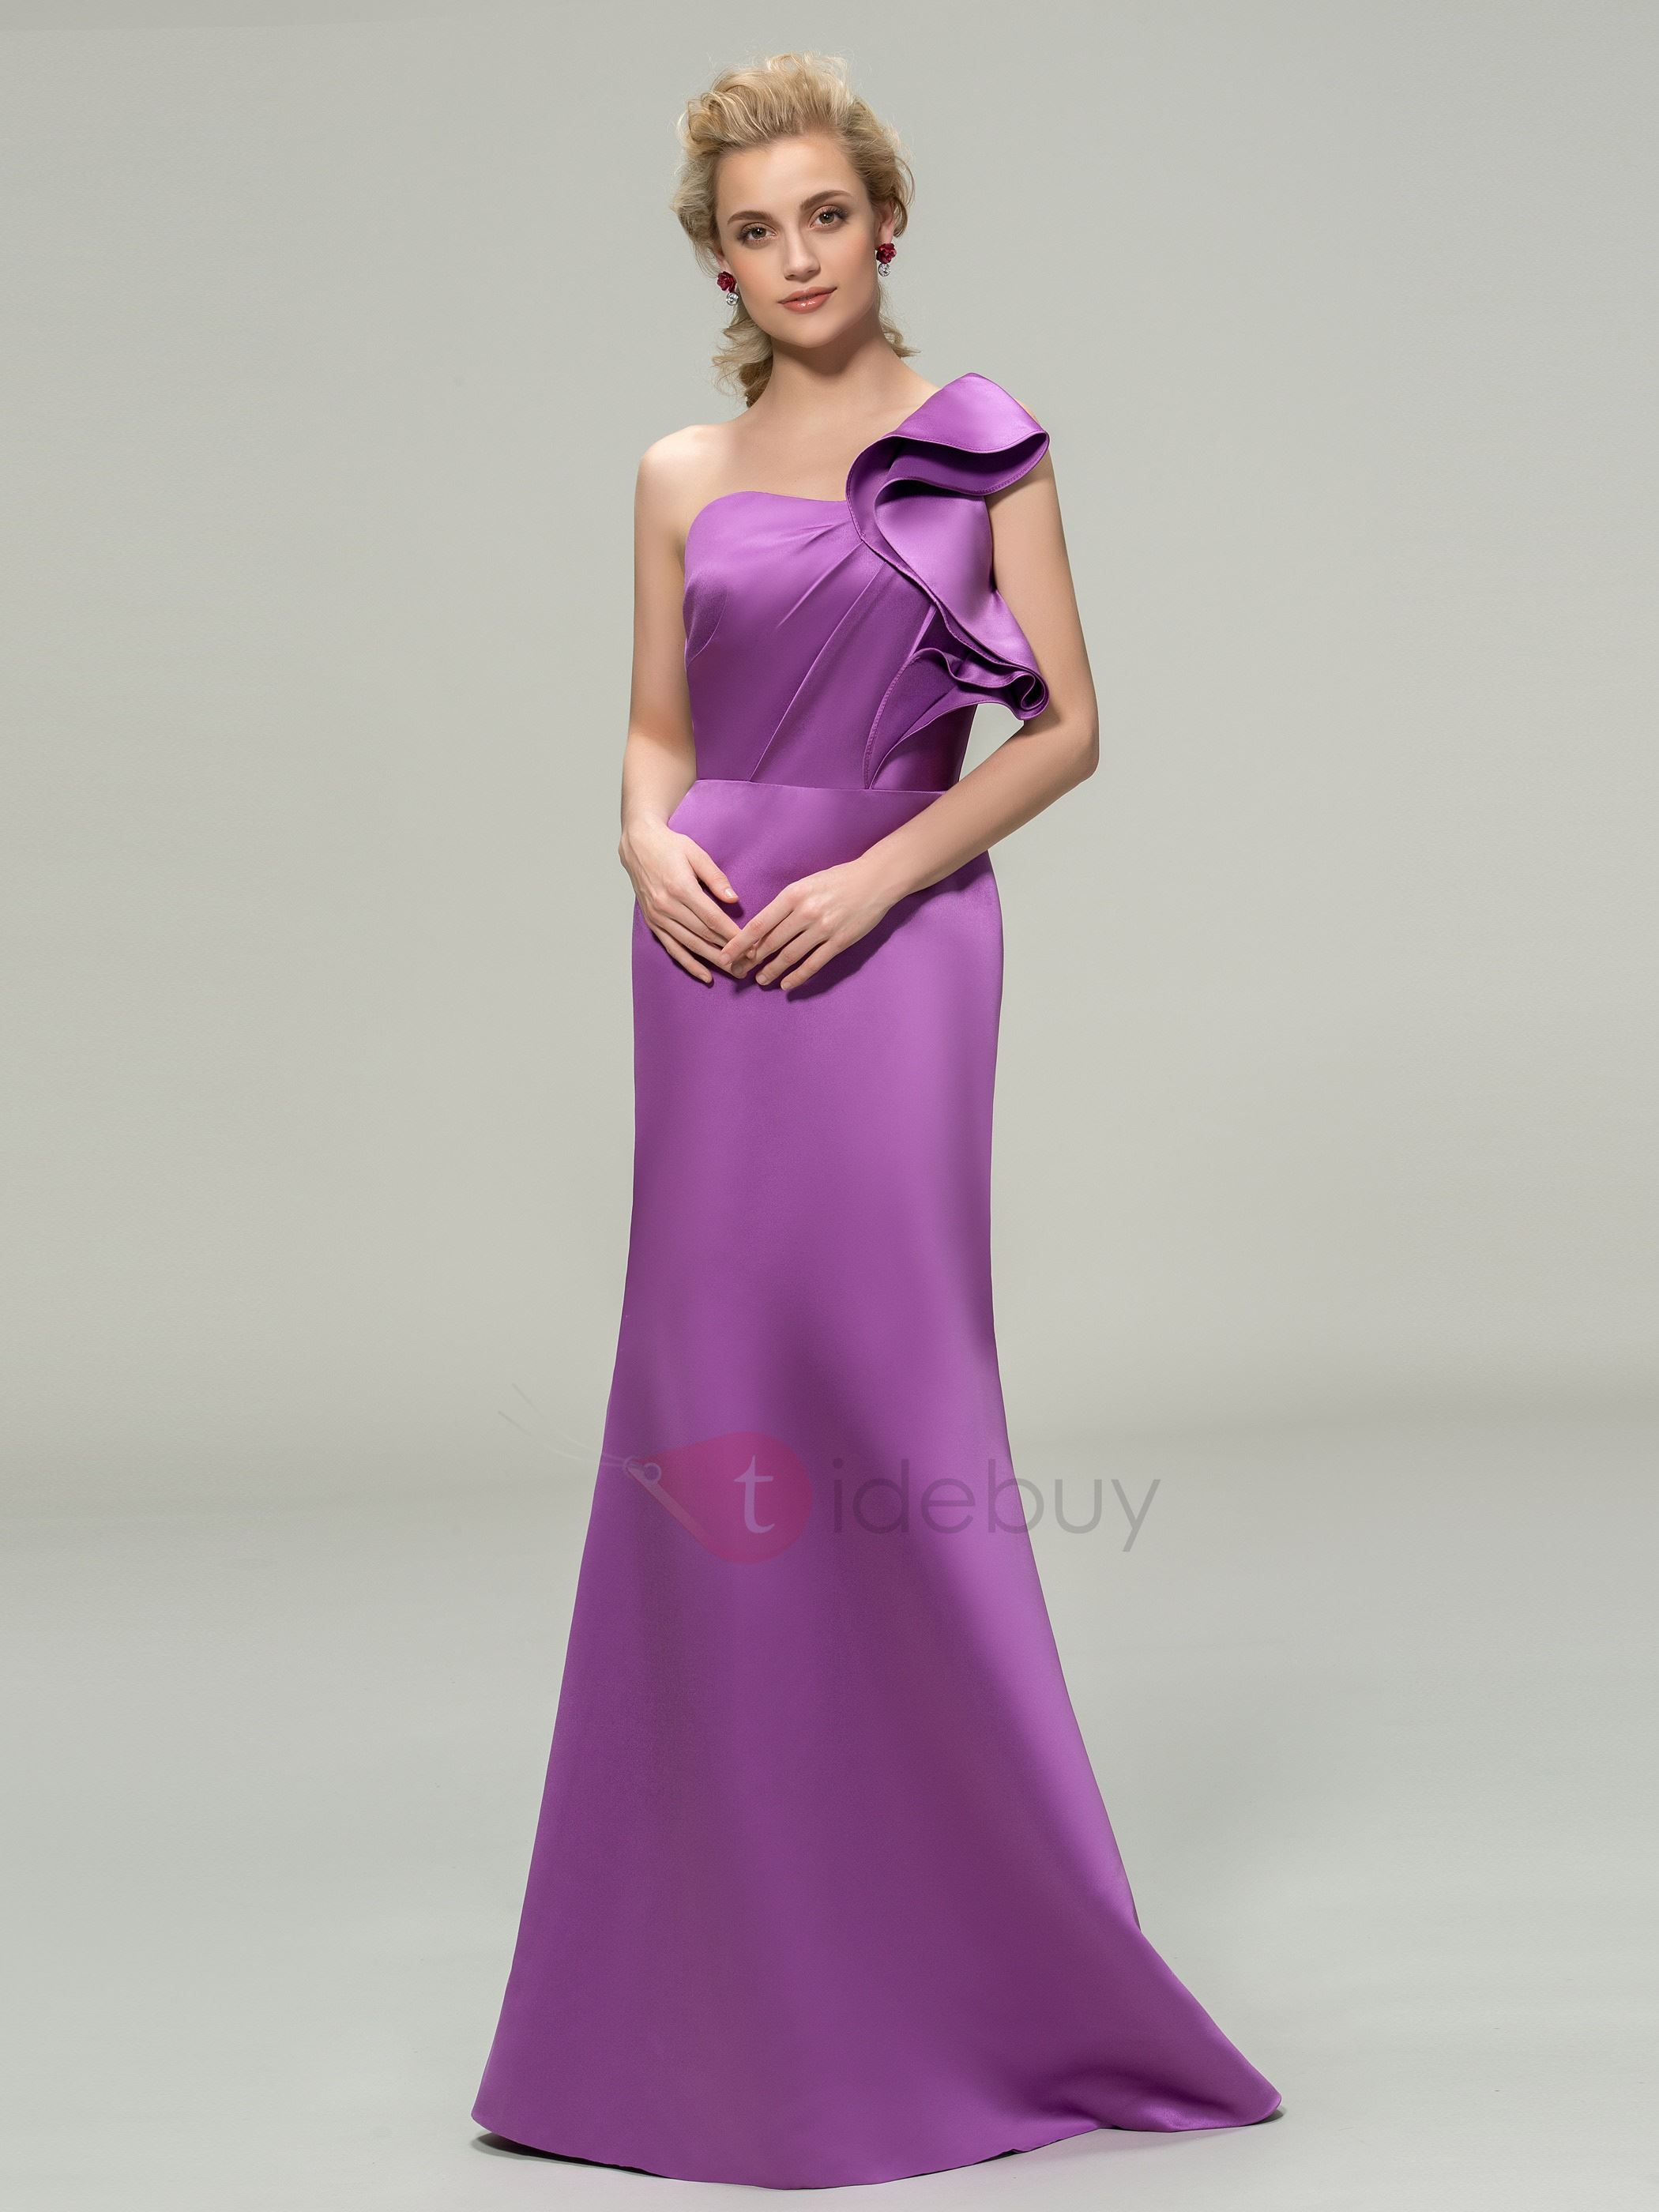 Simple Style Sheath Floor Length One Shoulder Bridesmaid Dress